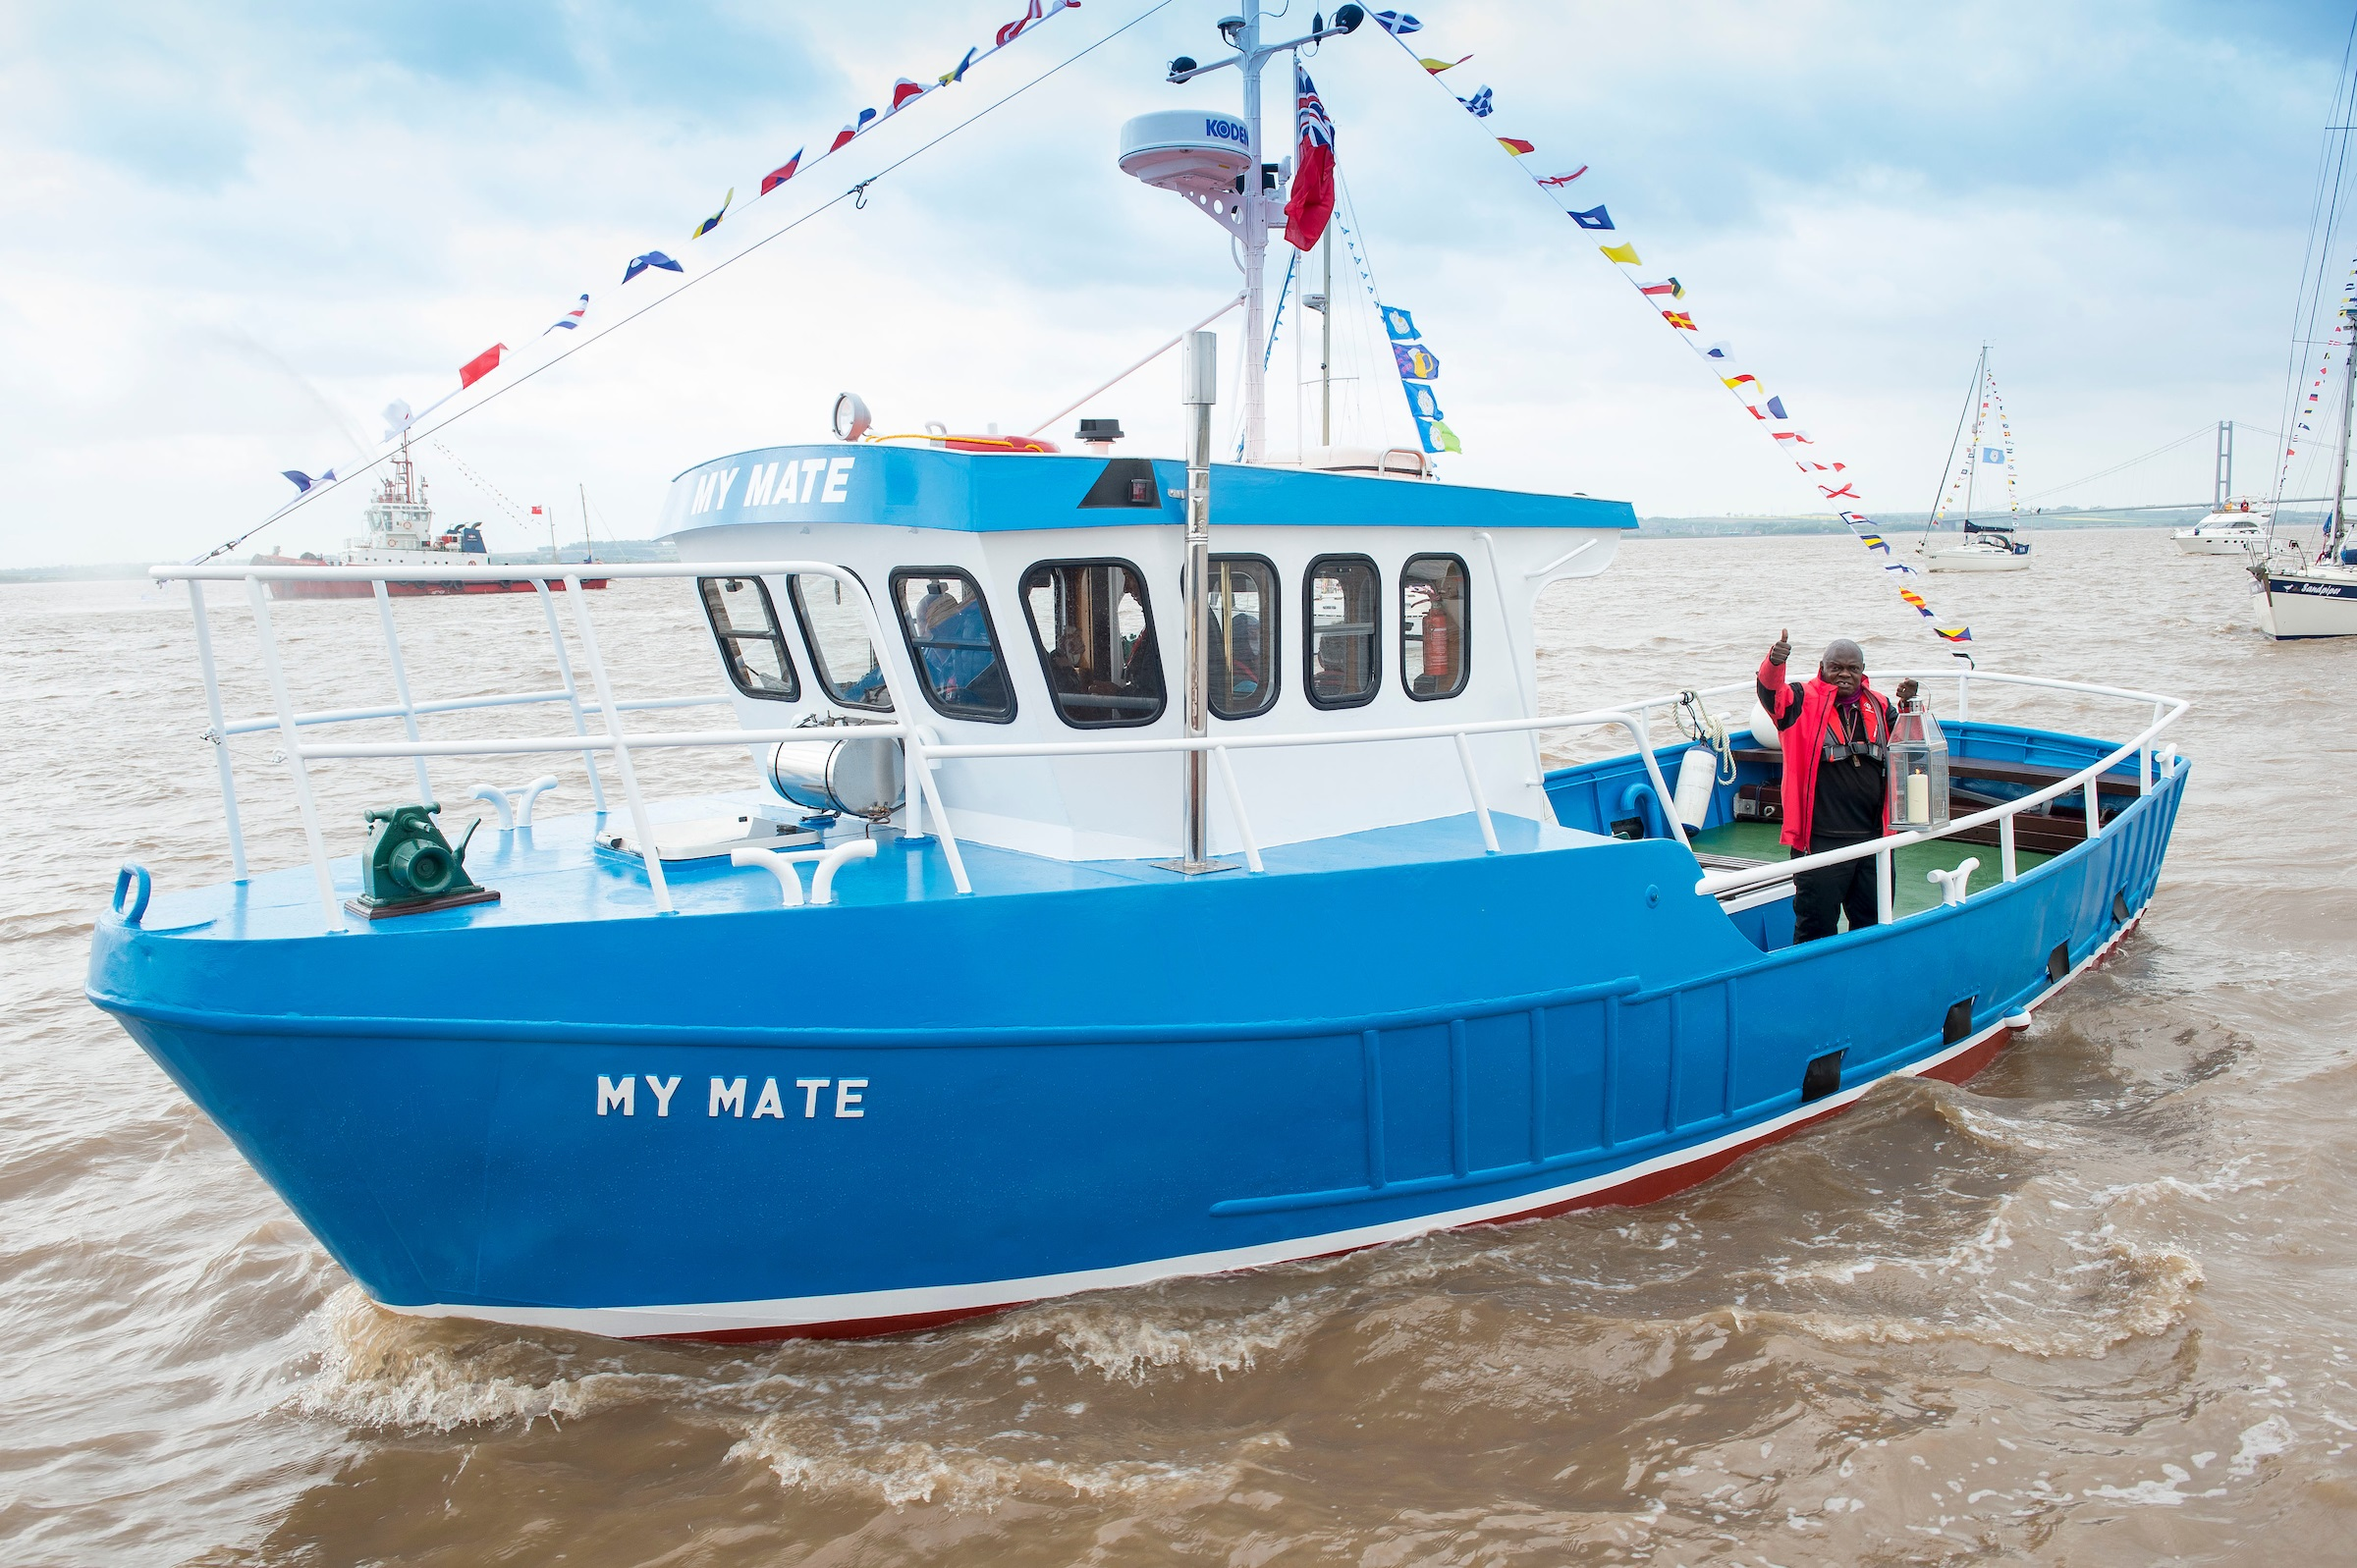 The Archbishop carries a lantern from All Saints Church on board the trawler My Mate at the head of a flotilla of vessels on the Humber estuary.